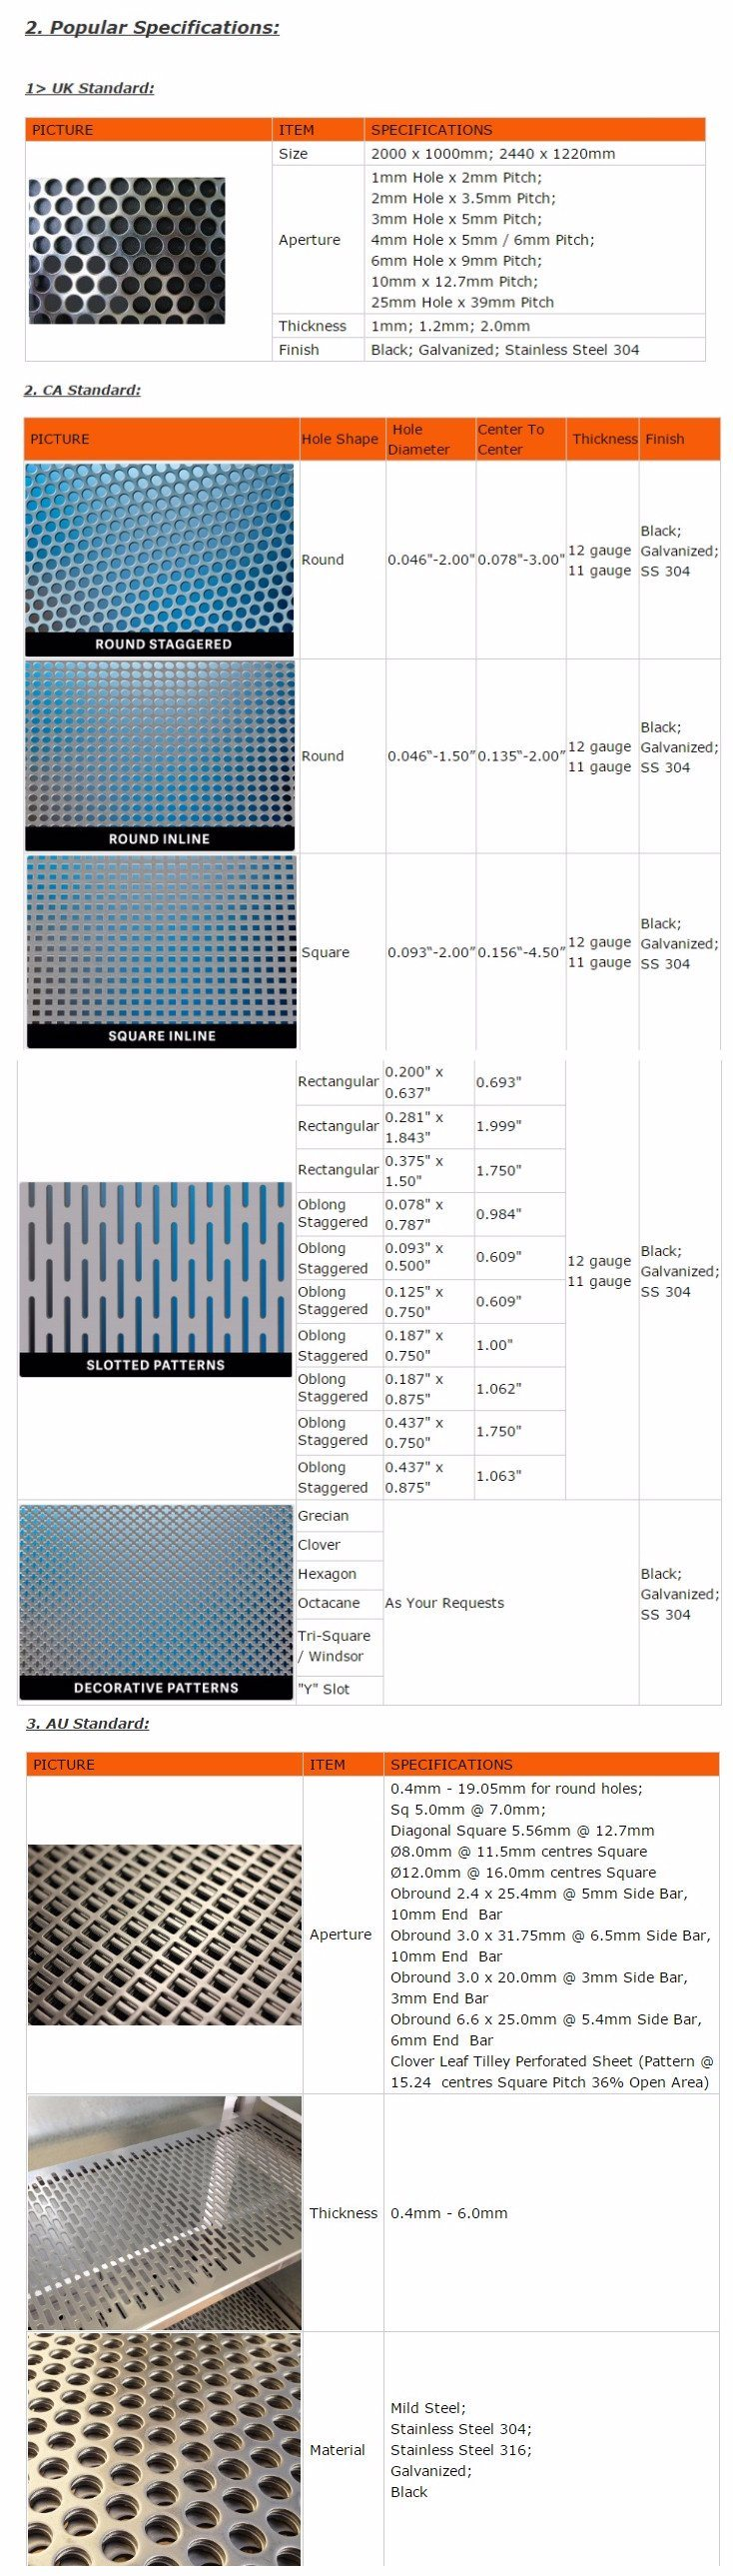 Kitchen Walls 201 Round Hole Perforated Stainless Steel Plate Sheet